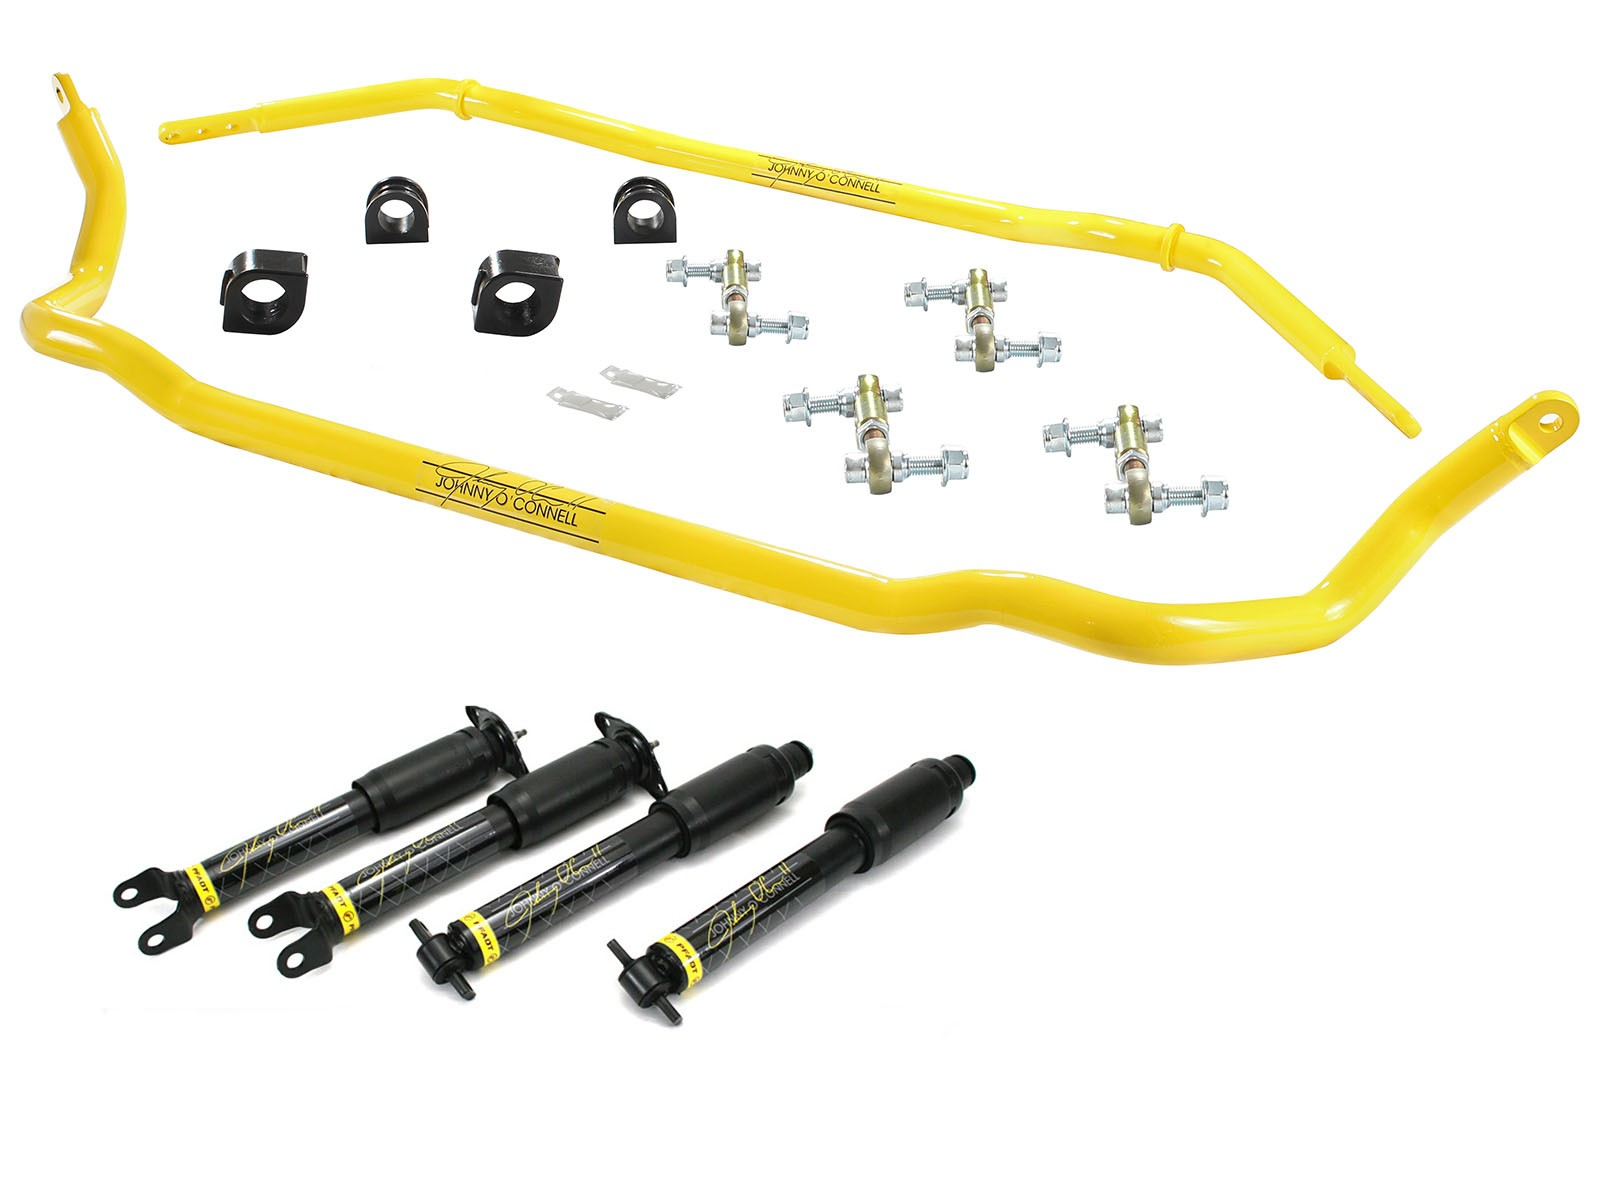 aFe POWER 530-401001-J aFe Control Johnny O'Connell Stage 1 Suspension Package